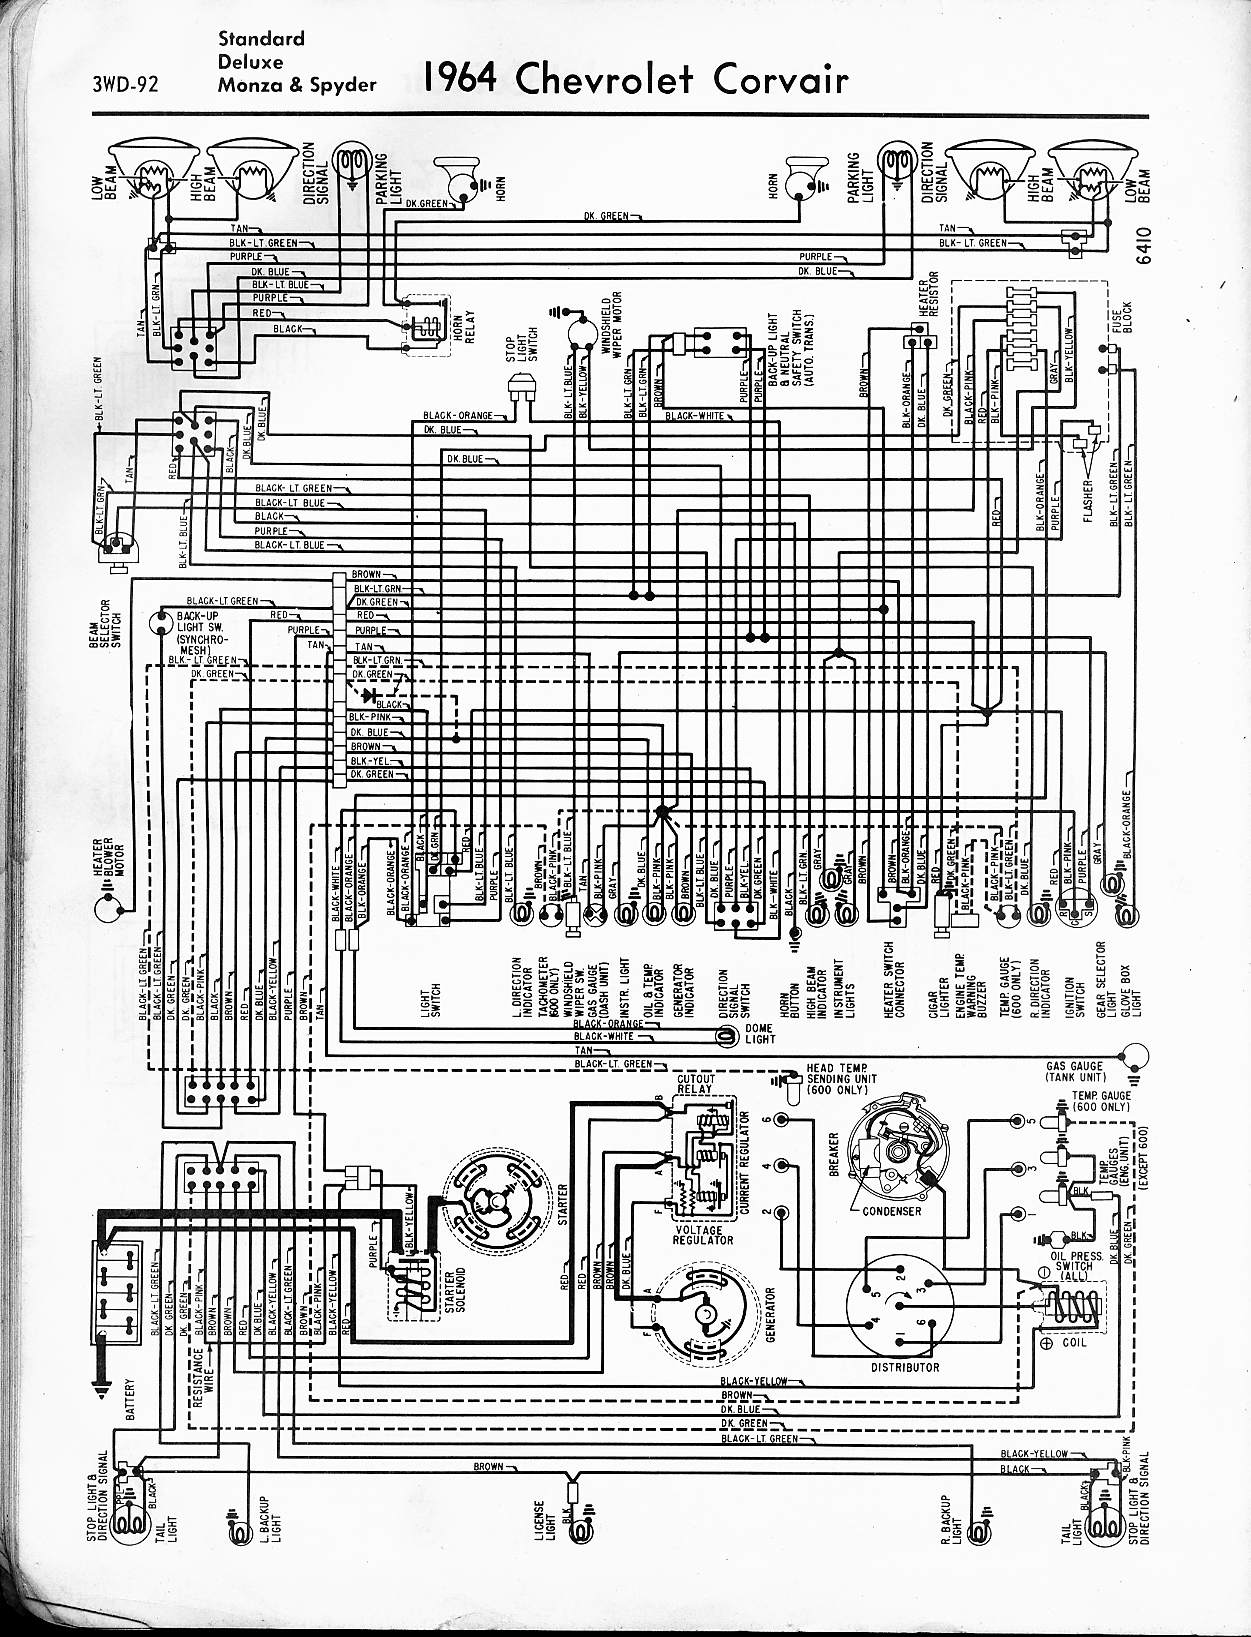 MWireChev64_3WD 092 57 65 chevy wiring diagrams 1964 impala ss wiring diagram at n-0.co